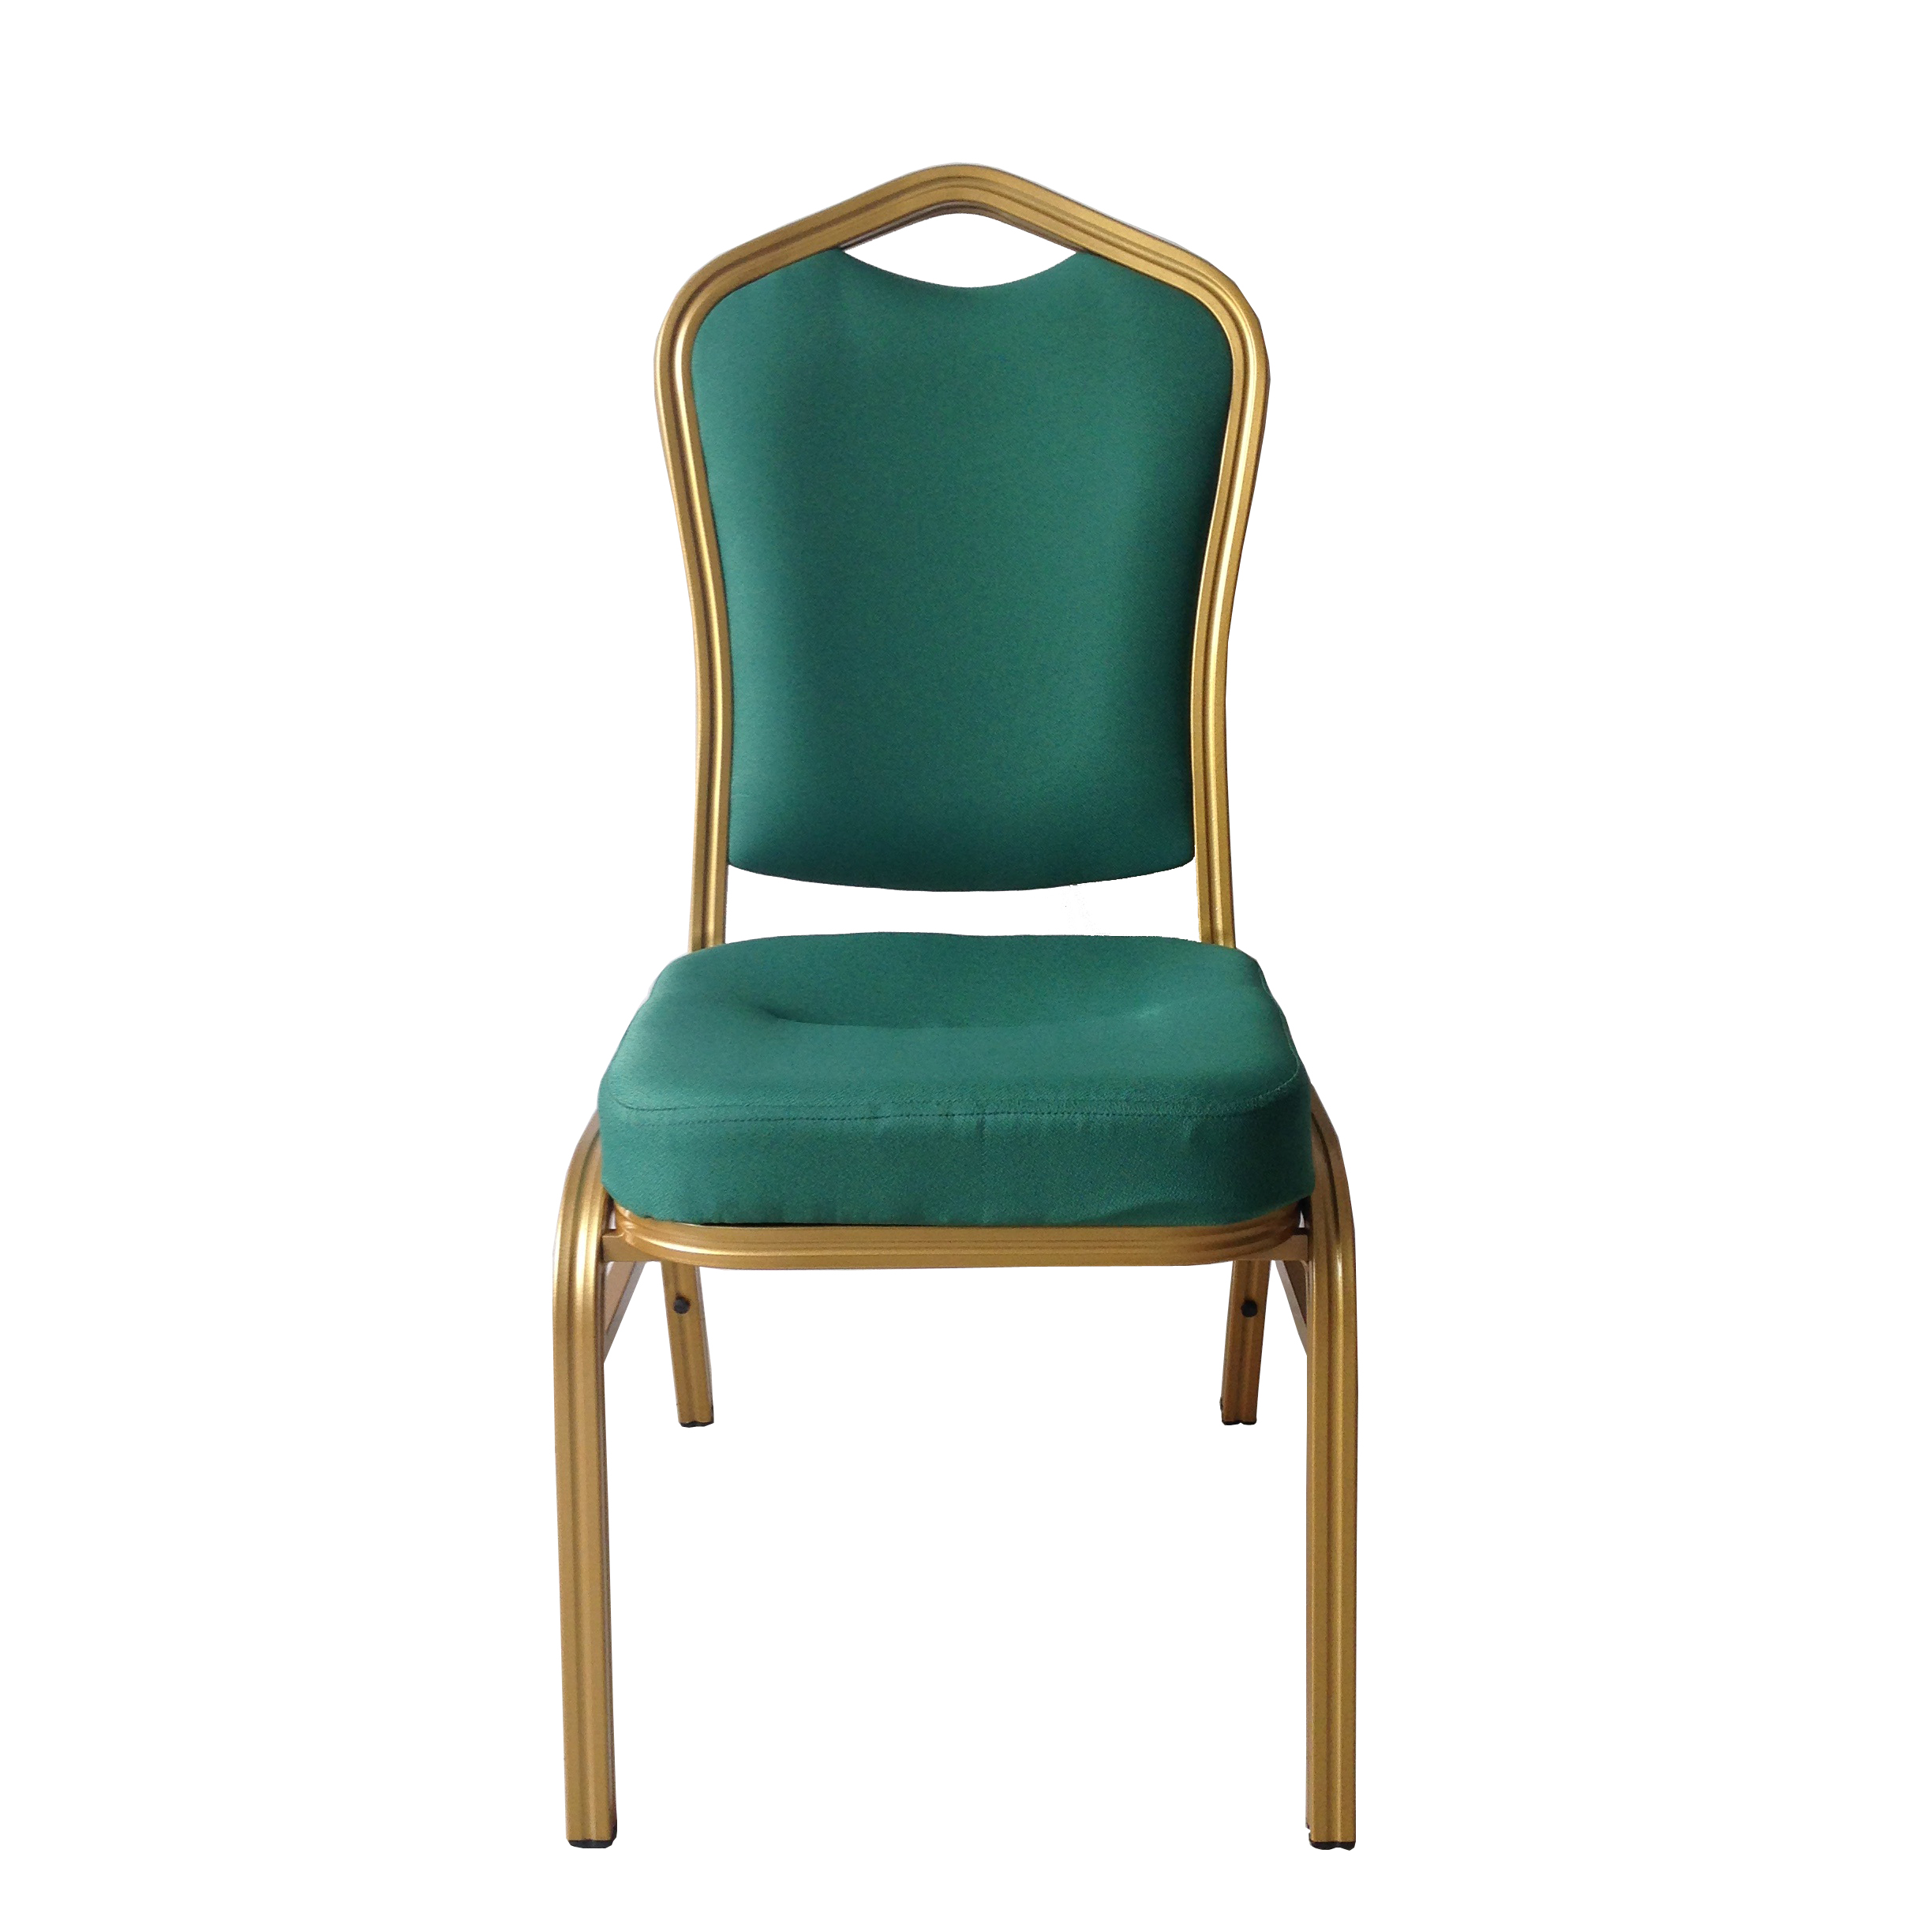 Used Banquet Chairs Used Banquet Furniture For Sale Sf L07 China Foshan Jiangchang